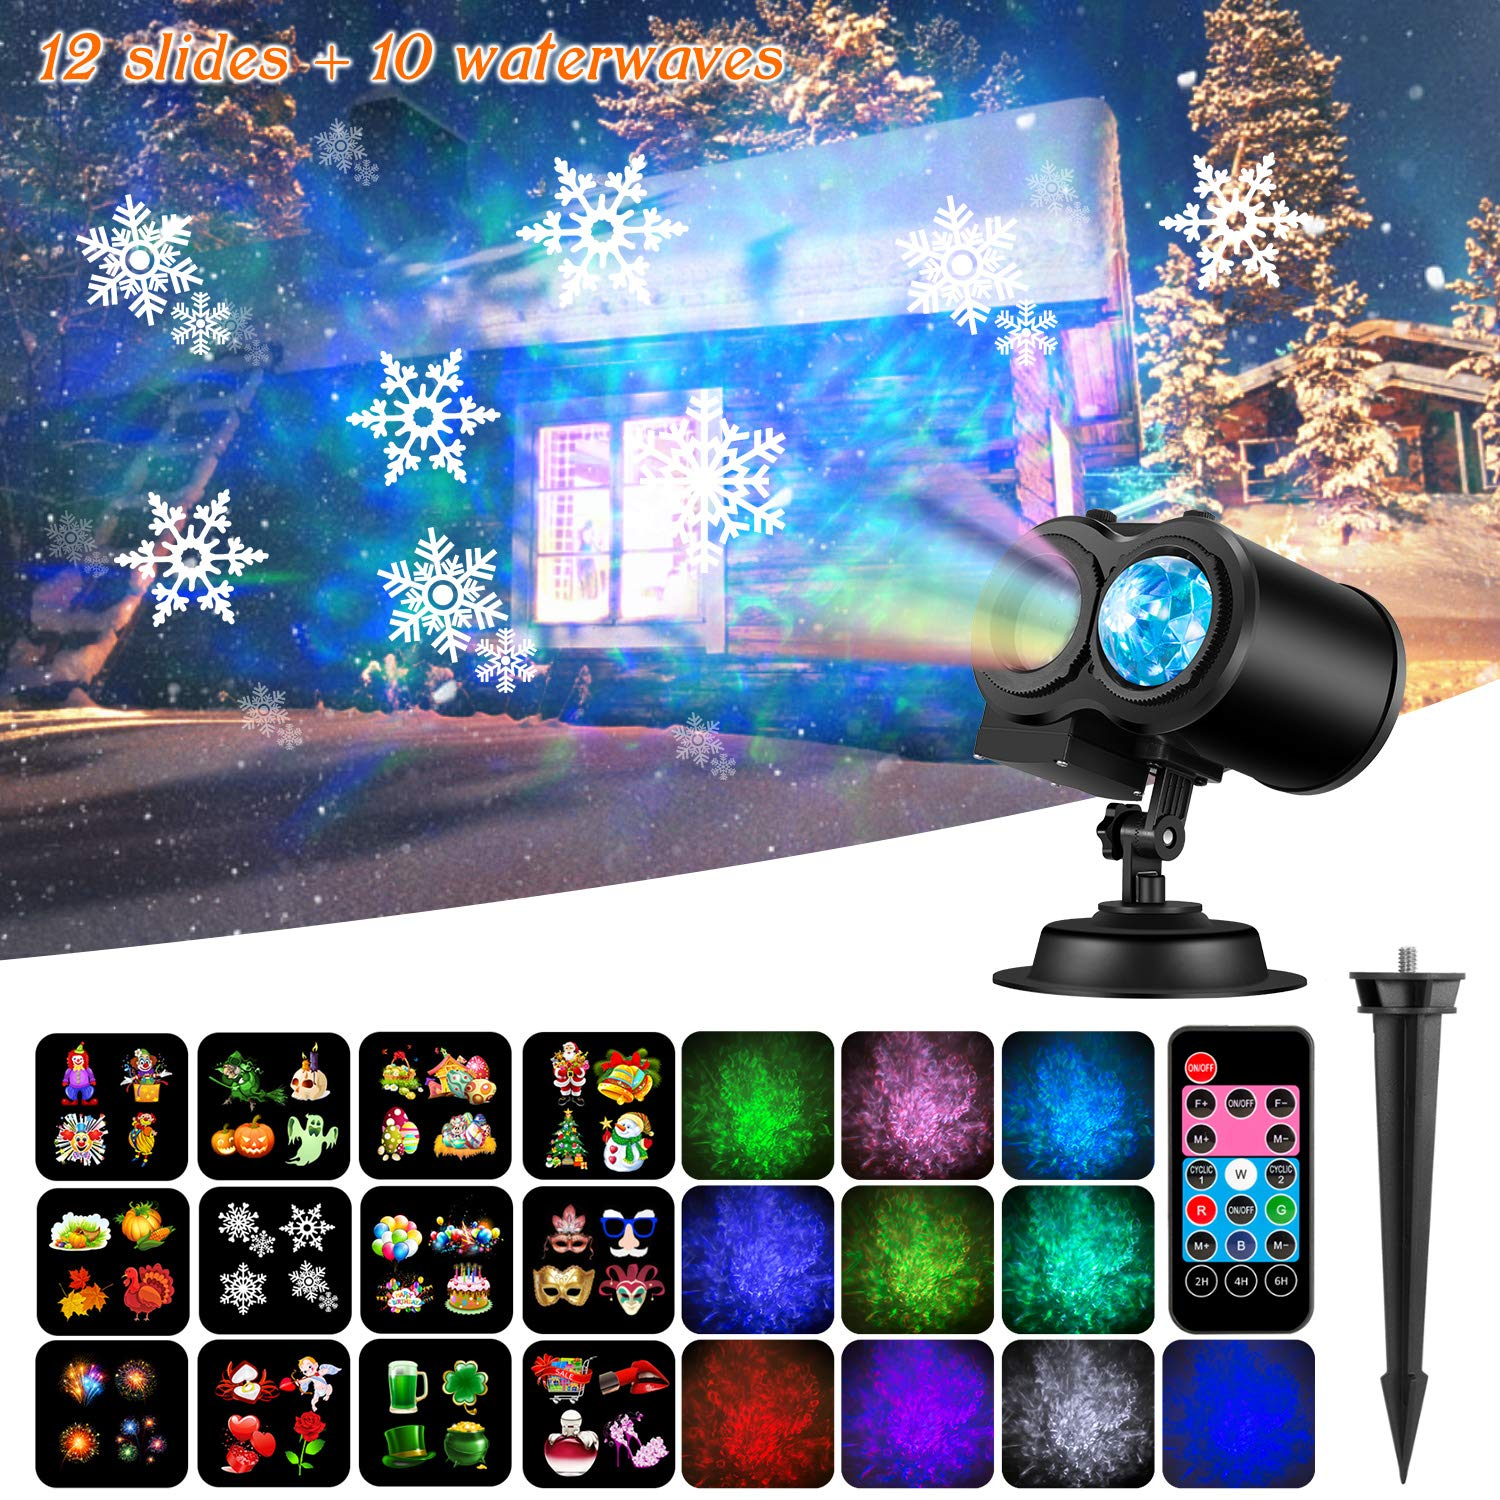 NEXGADGET Christmas Projector Light,2 in 1 Water Wave Light Projector with 12 Slides,Holiday Decoration Light for Party,Birthday,Remote Control Waterproof Outdoor/Indoor